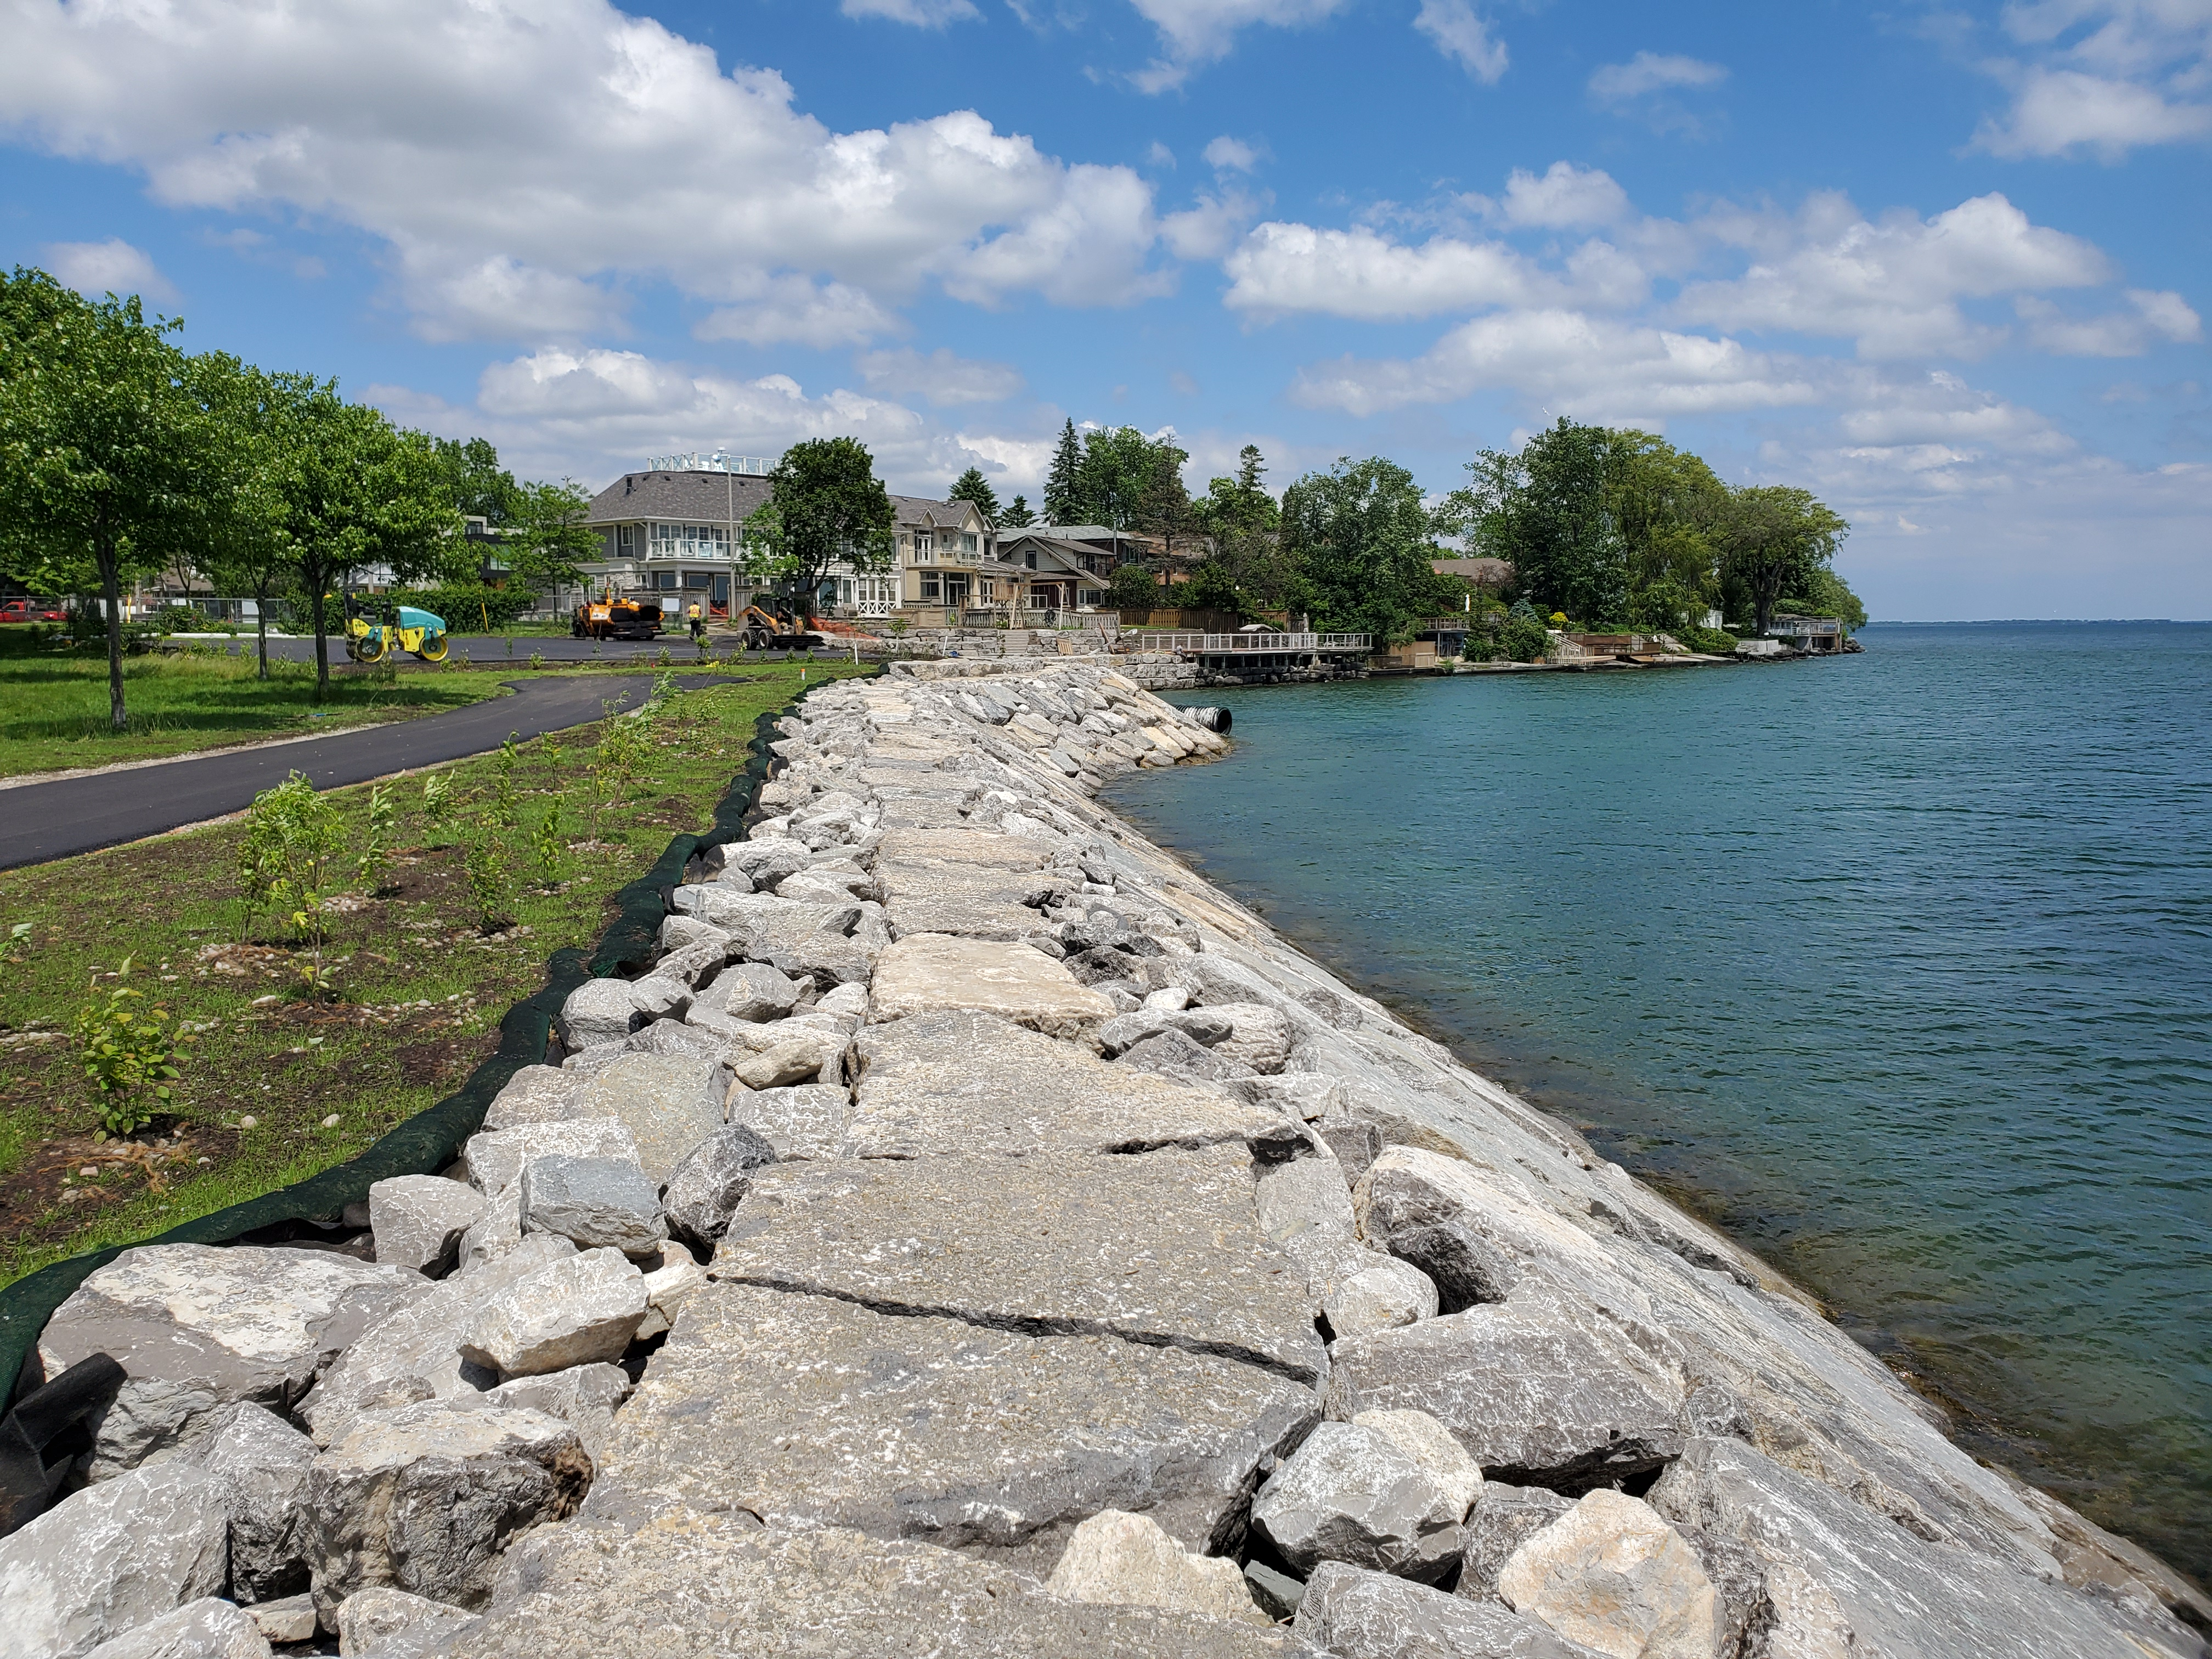 Repaired revetment with rip rap splash apron and planted swale. Source: TRCA, 2019.